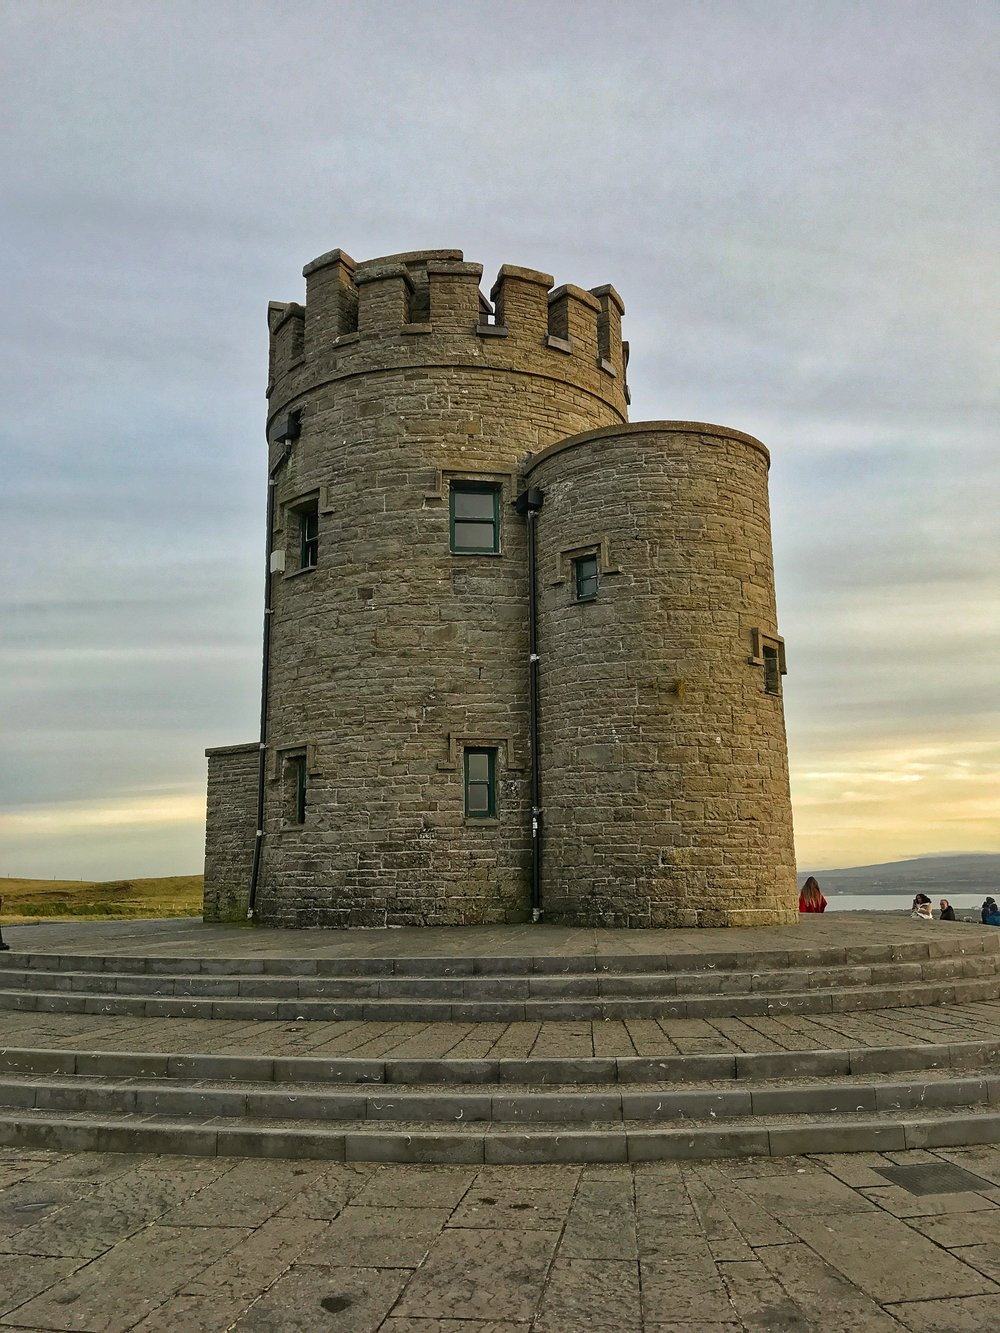 O'Brien's Tower, built in the 18th Century has fantastic 360 degree views of the entirety of the Cliffs of Moher